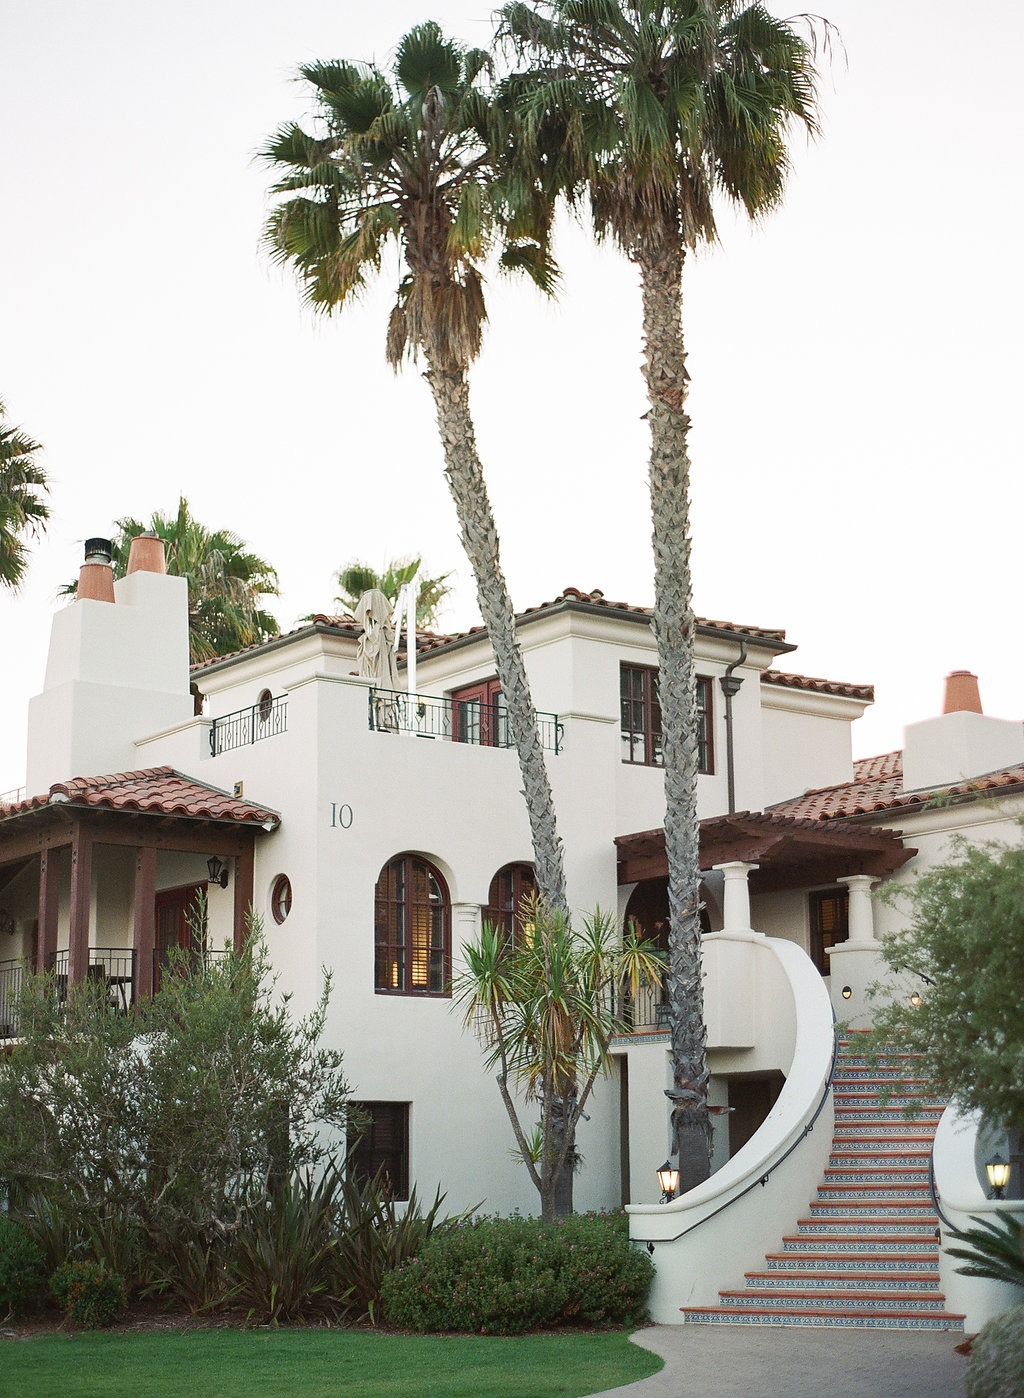 Santa Barbara Historical Museum Wedding Venue